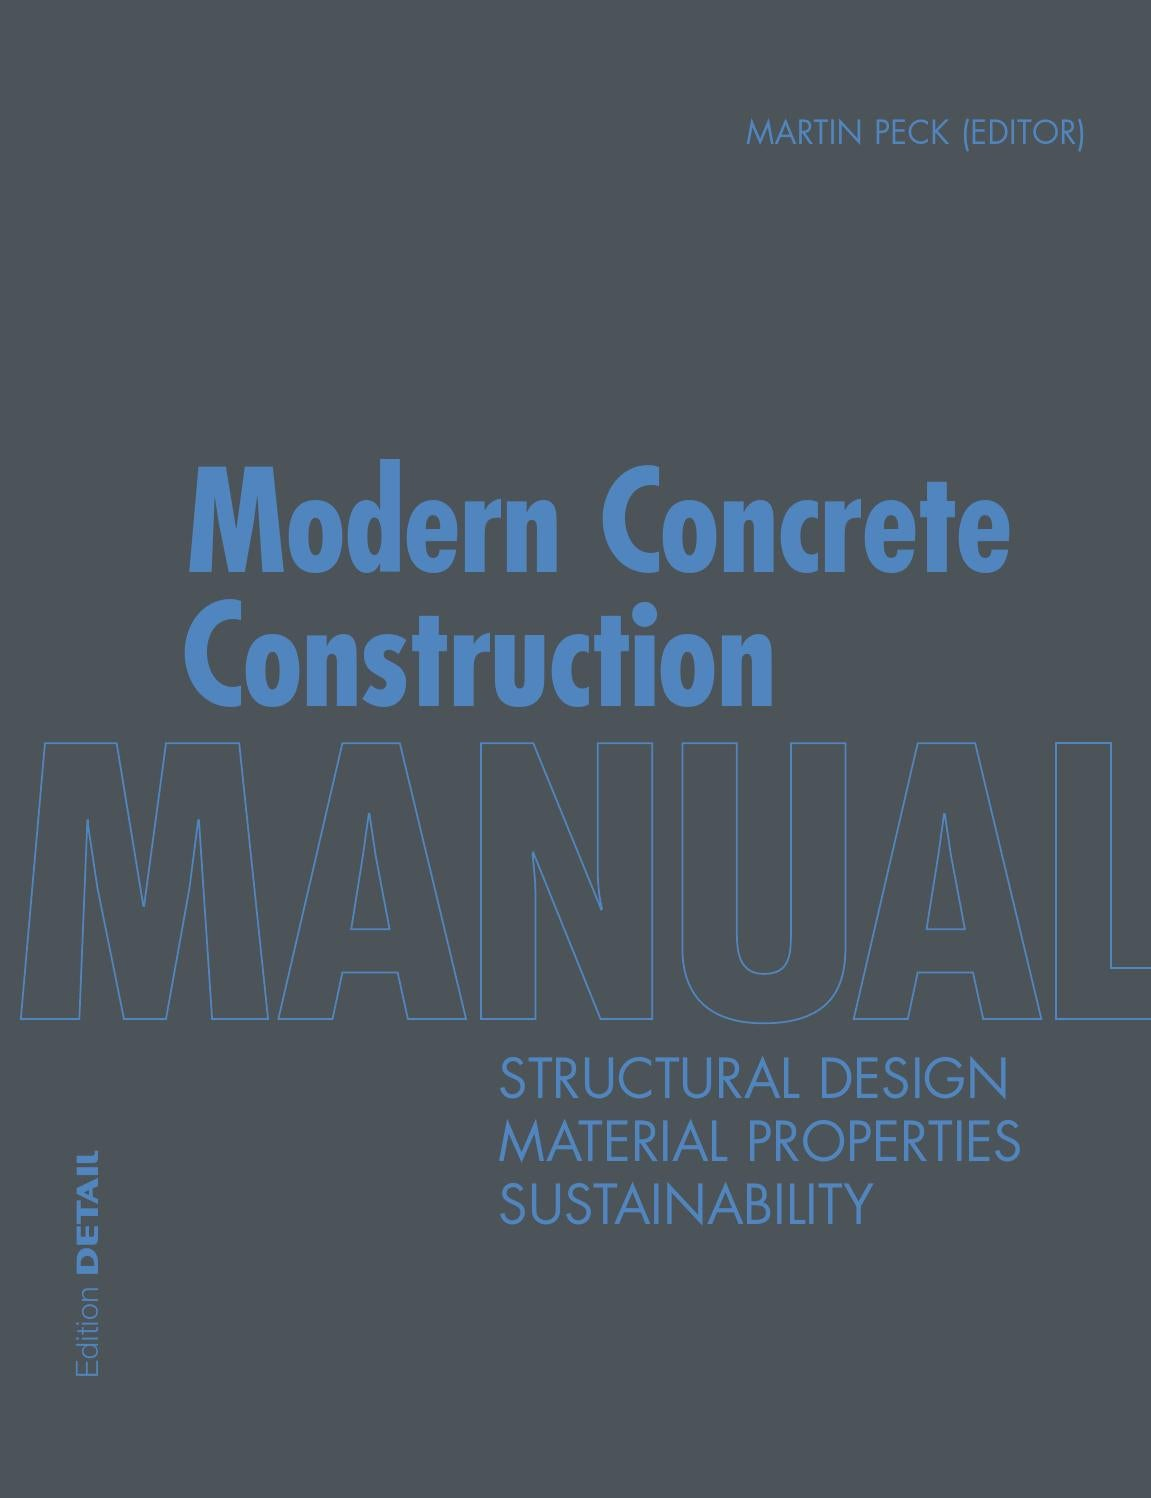 Modern Concrete Construction Manual By Detail Issuu Threephase Electrical Wiring Installation In A Multistory Building